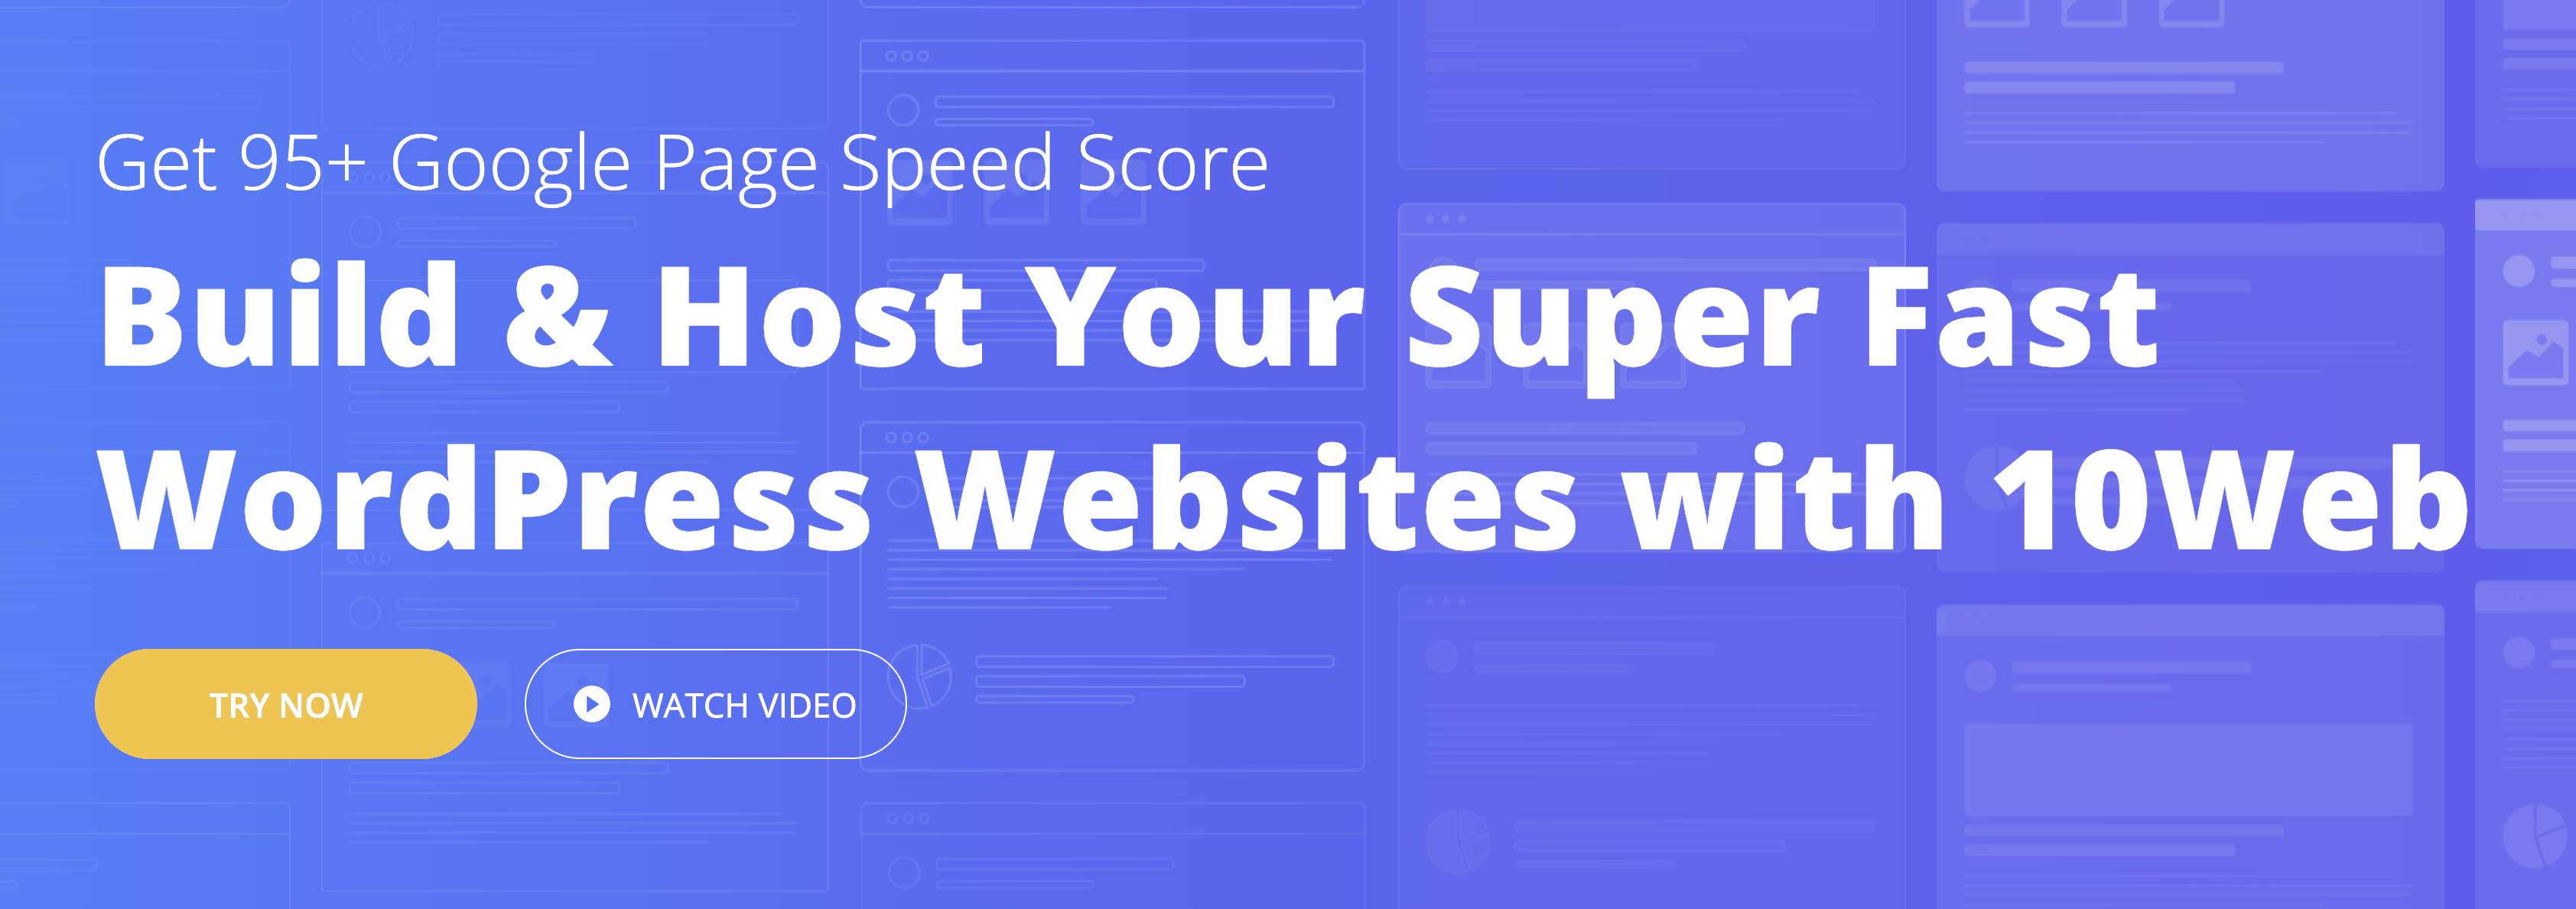 Build & Host Your Super Fast WordPress Websites with 10Web